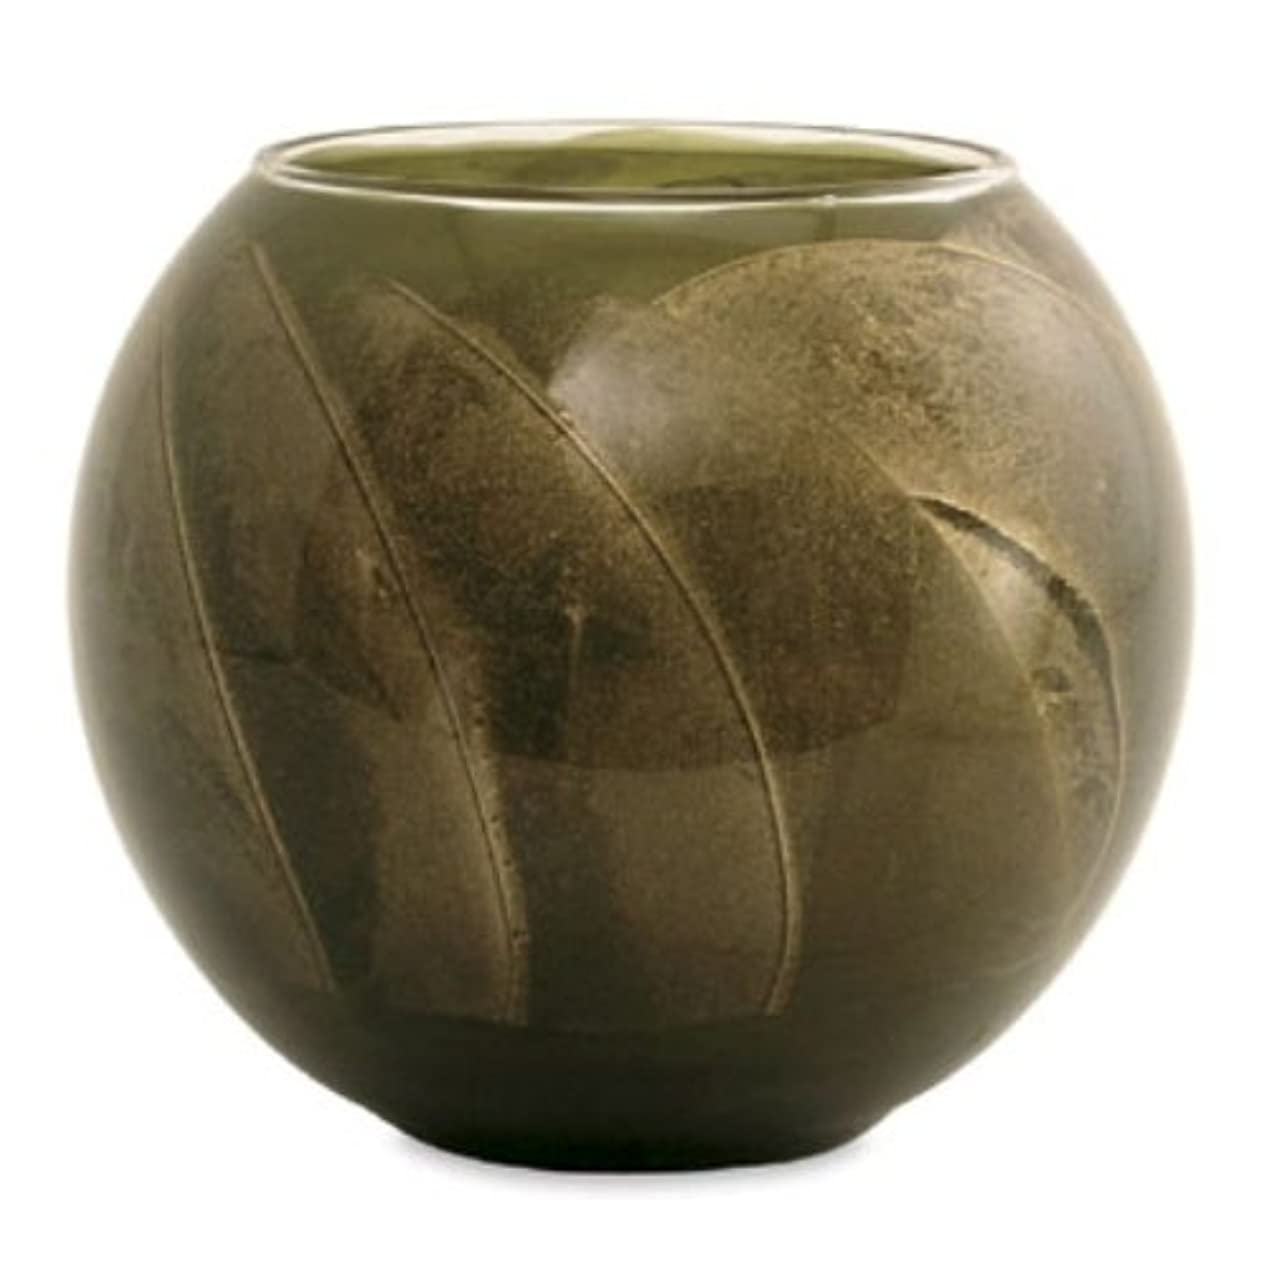 一貫性のない奨励します祭司Northern Lights Candles Esque Polished Globe - 4 inch Olive by Northern Lights Candles [並行輸入品]